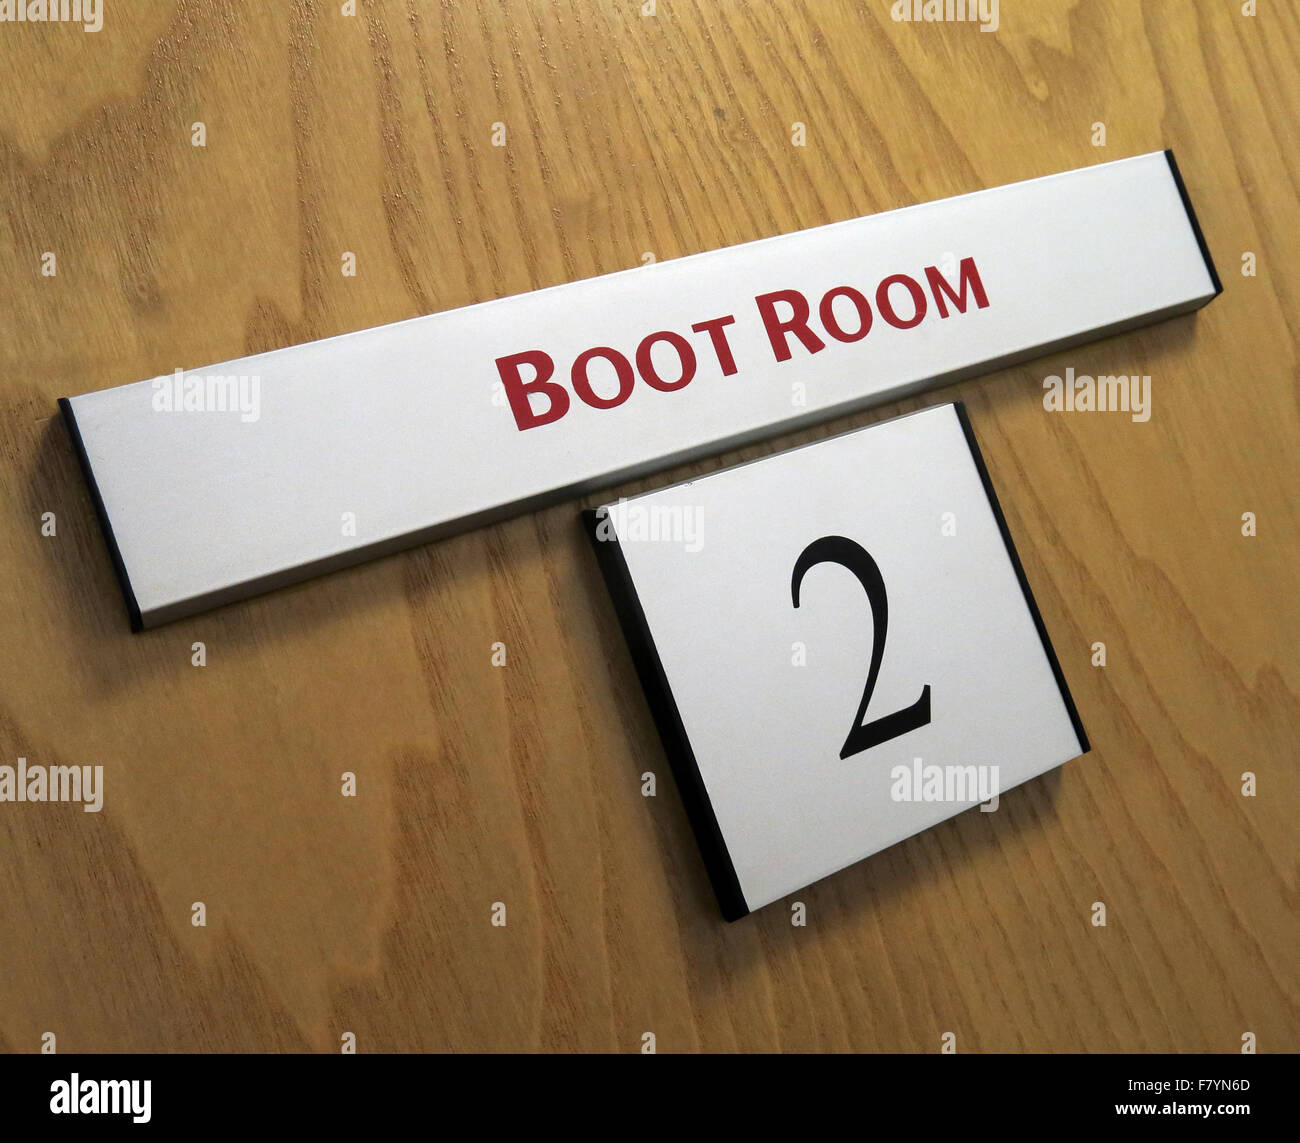 Manchester United Boot Room Door, Old Trafford, Stretford, England, UK Stock Photo